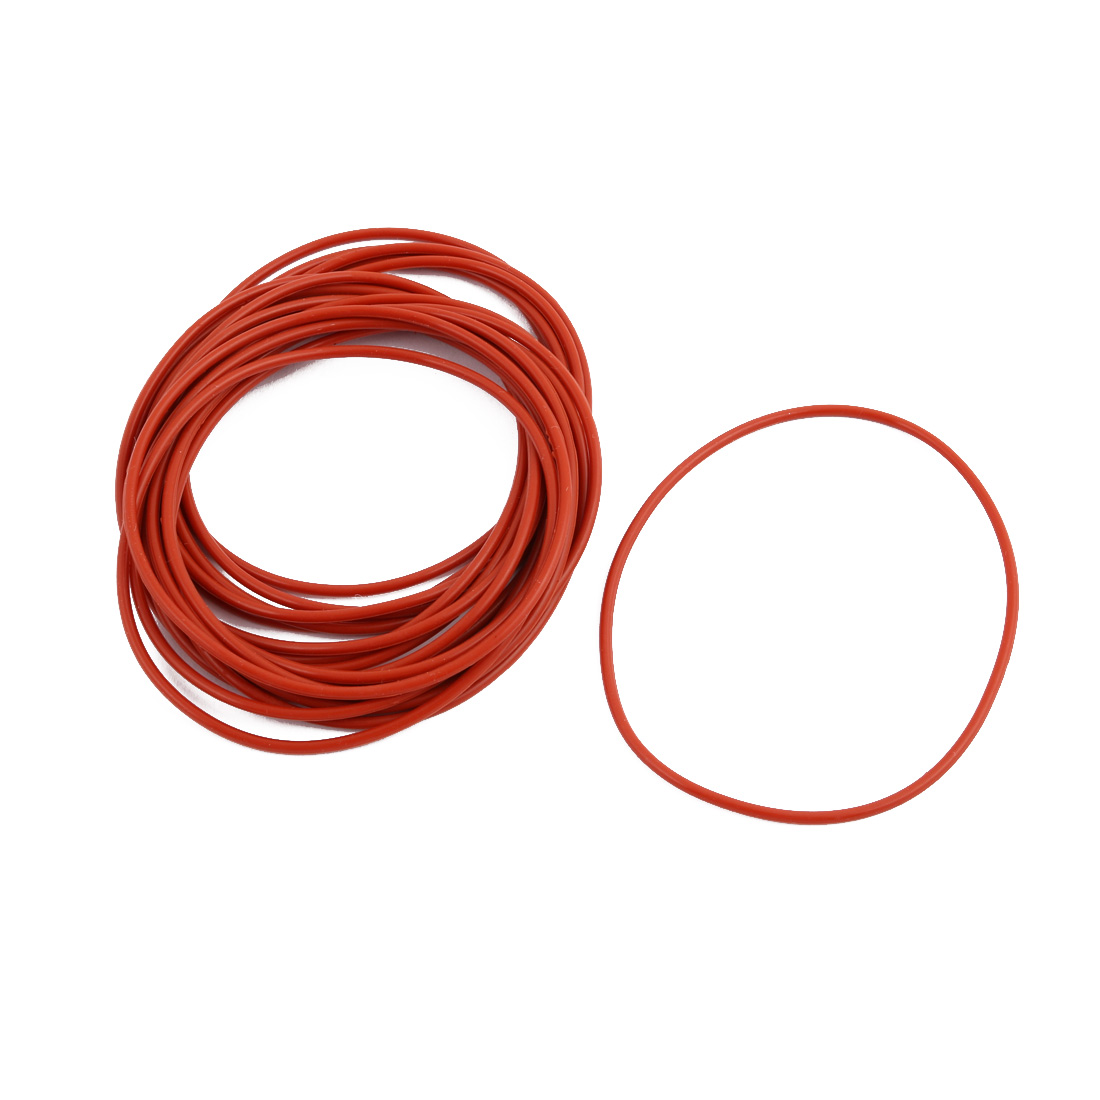 20pcs Red Round Nitrile Butadiene Rubber NBR O-Ring 70mm OD 1.9mm Width